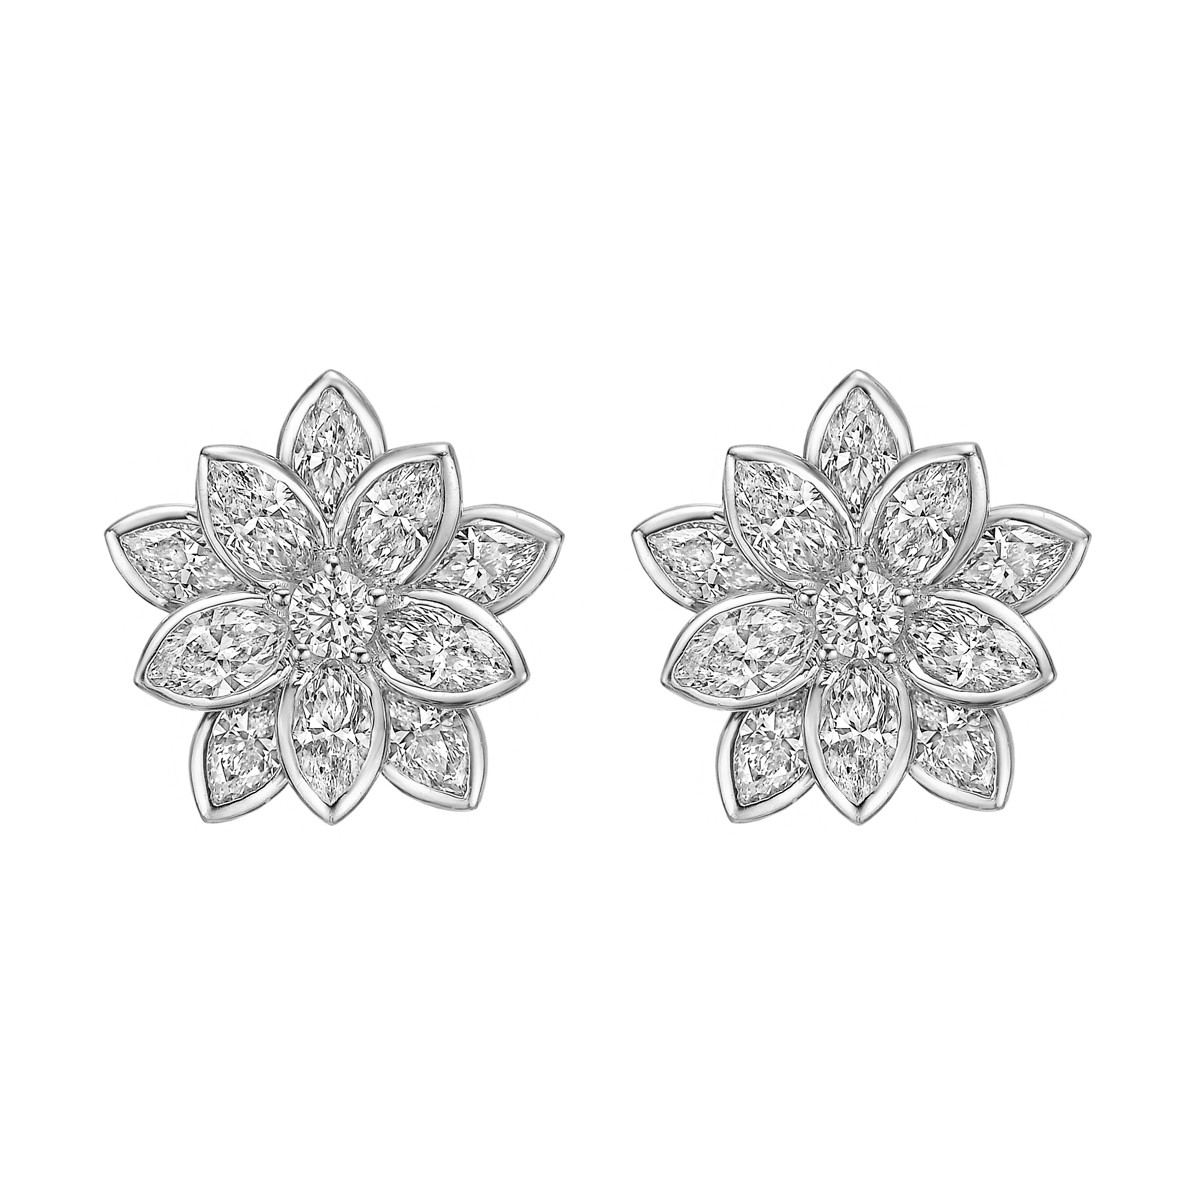 18k White Gold & Diamond Lotus Flower Earrings